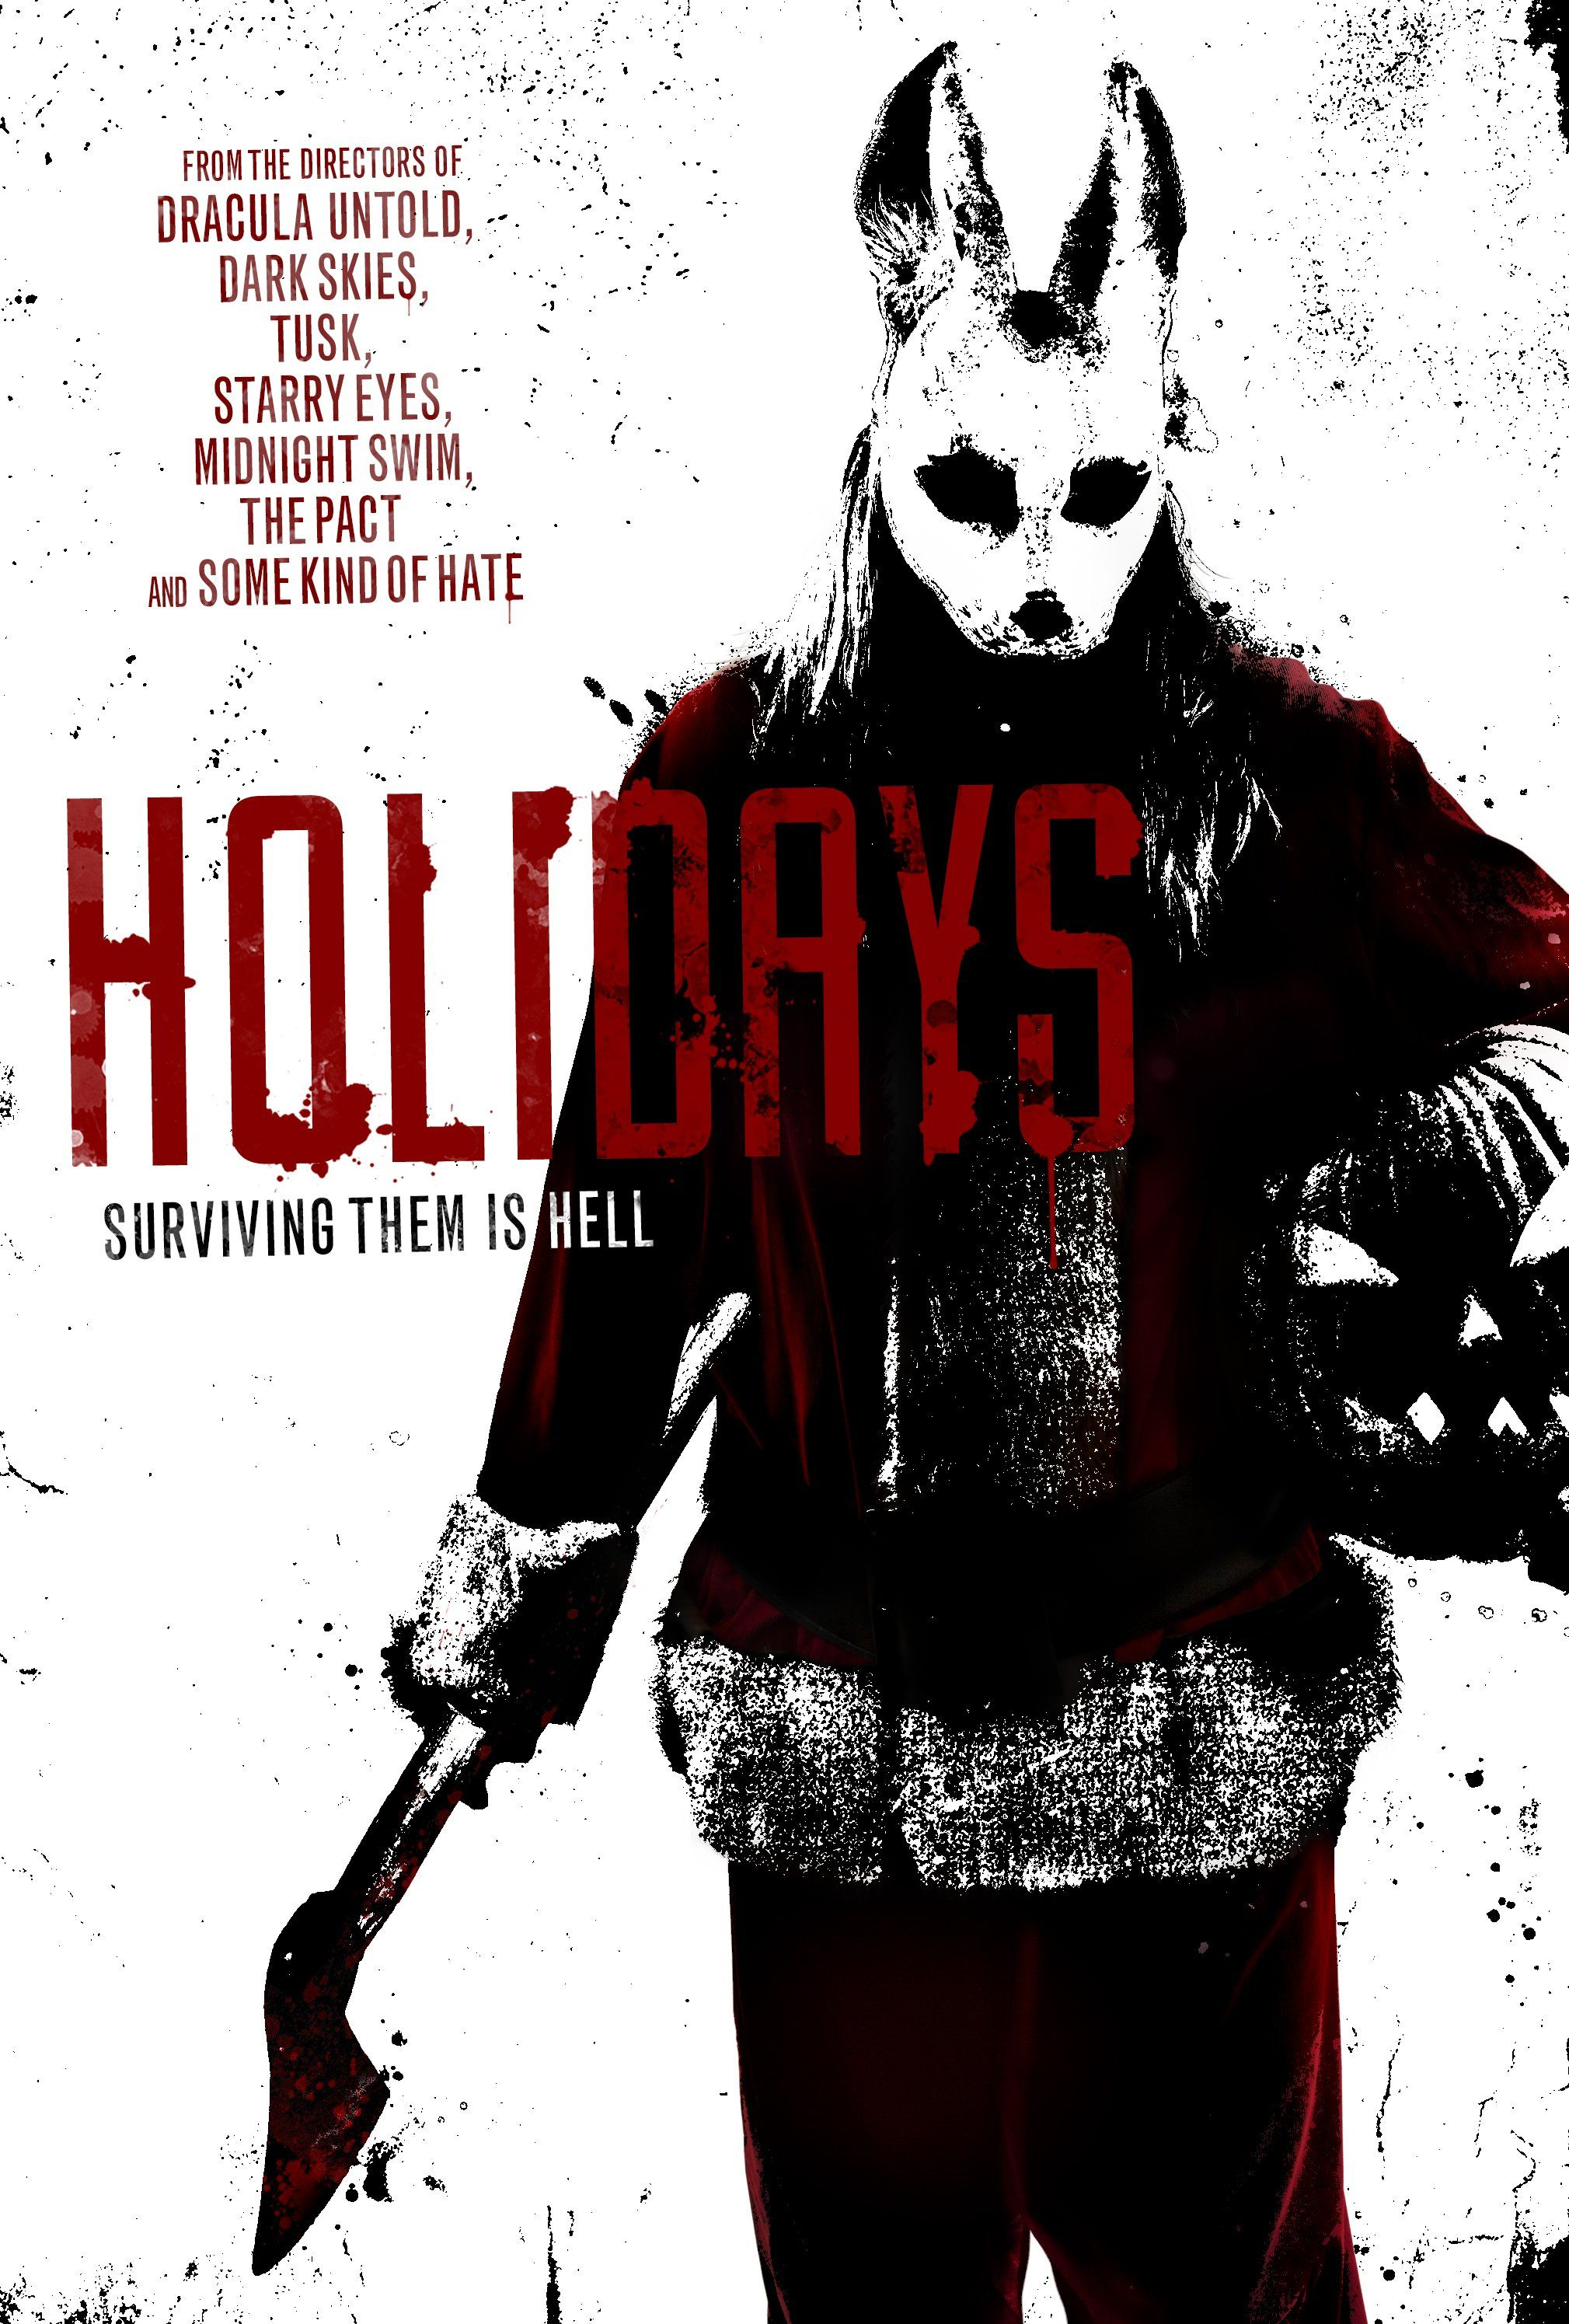 Holidays 2016 Holiday Movie Scary Movies Full Movies Online Free